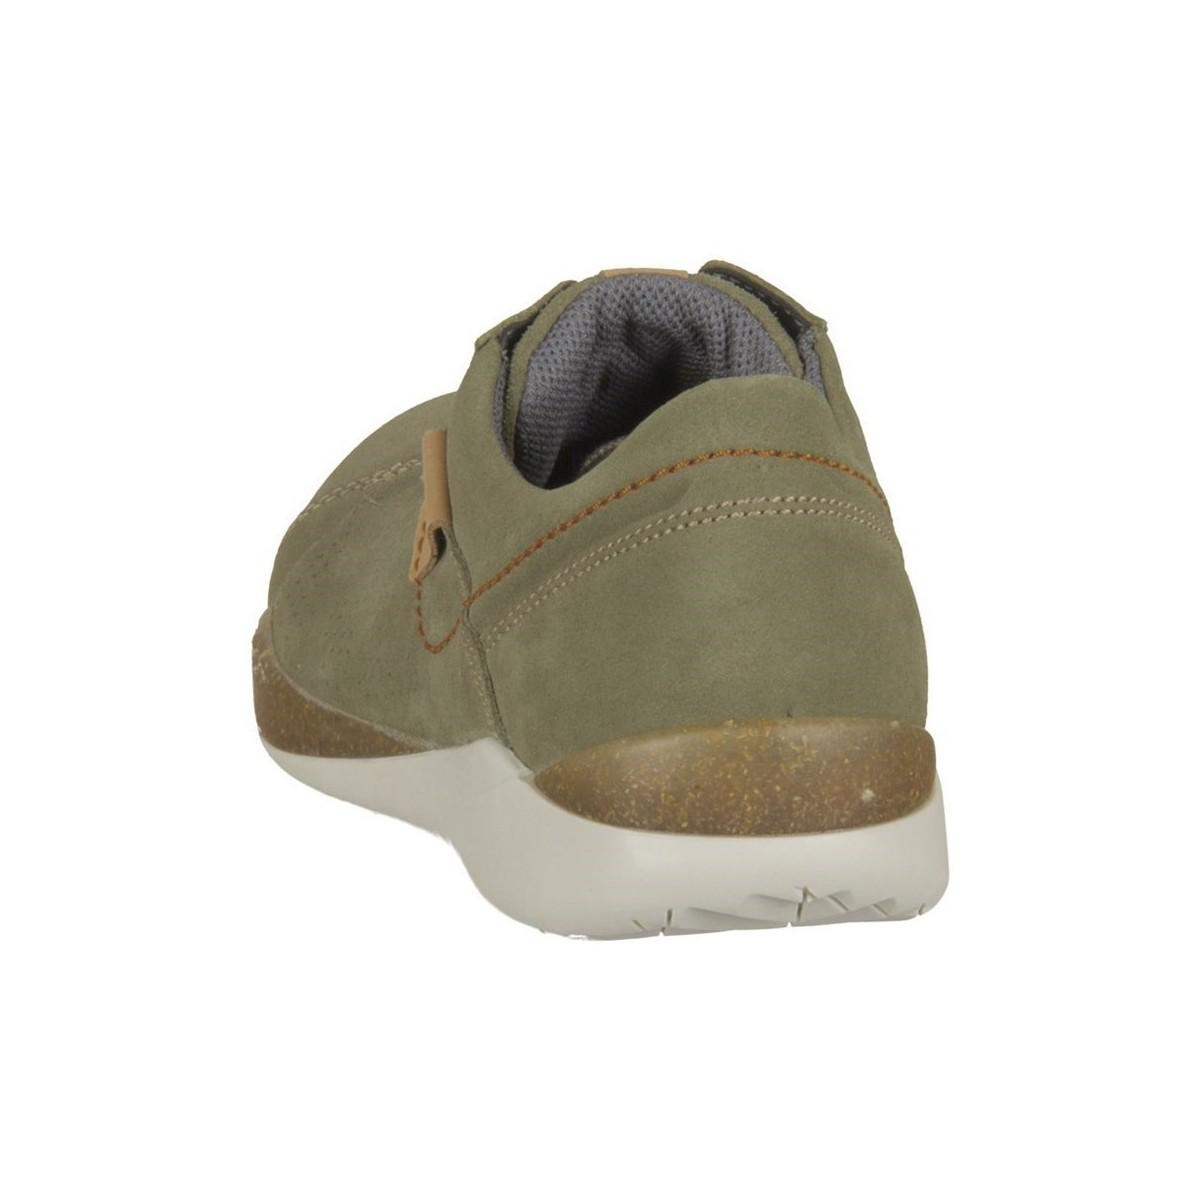 reputable site 4604d 4abe6 josef-seibel-multicolour-Ricardo-05-43505-Te949-680-Moos-Mens-Shoes -trainers-In-Multicolour.jpeg